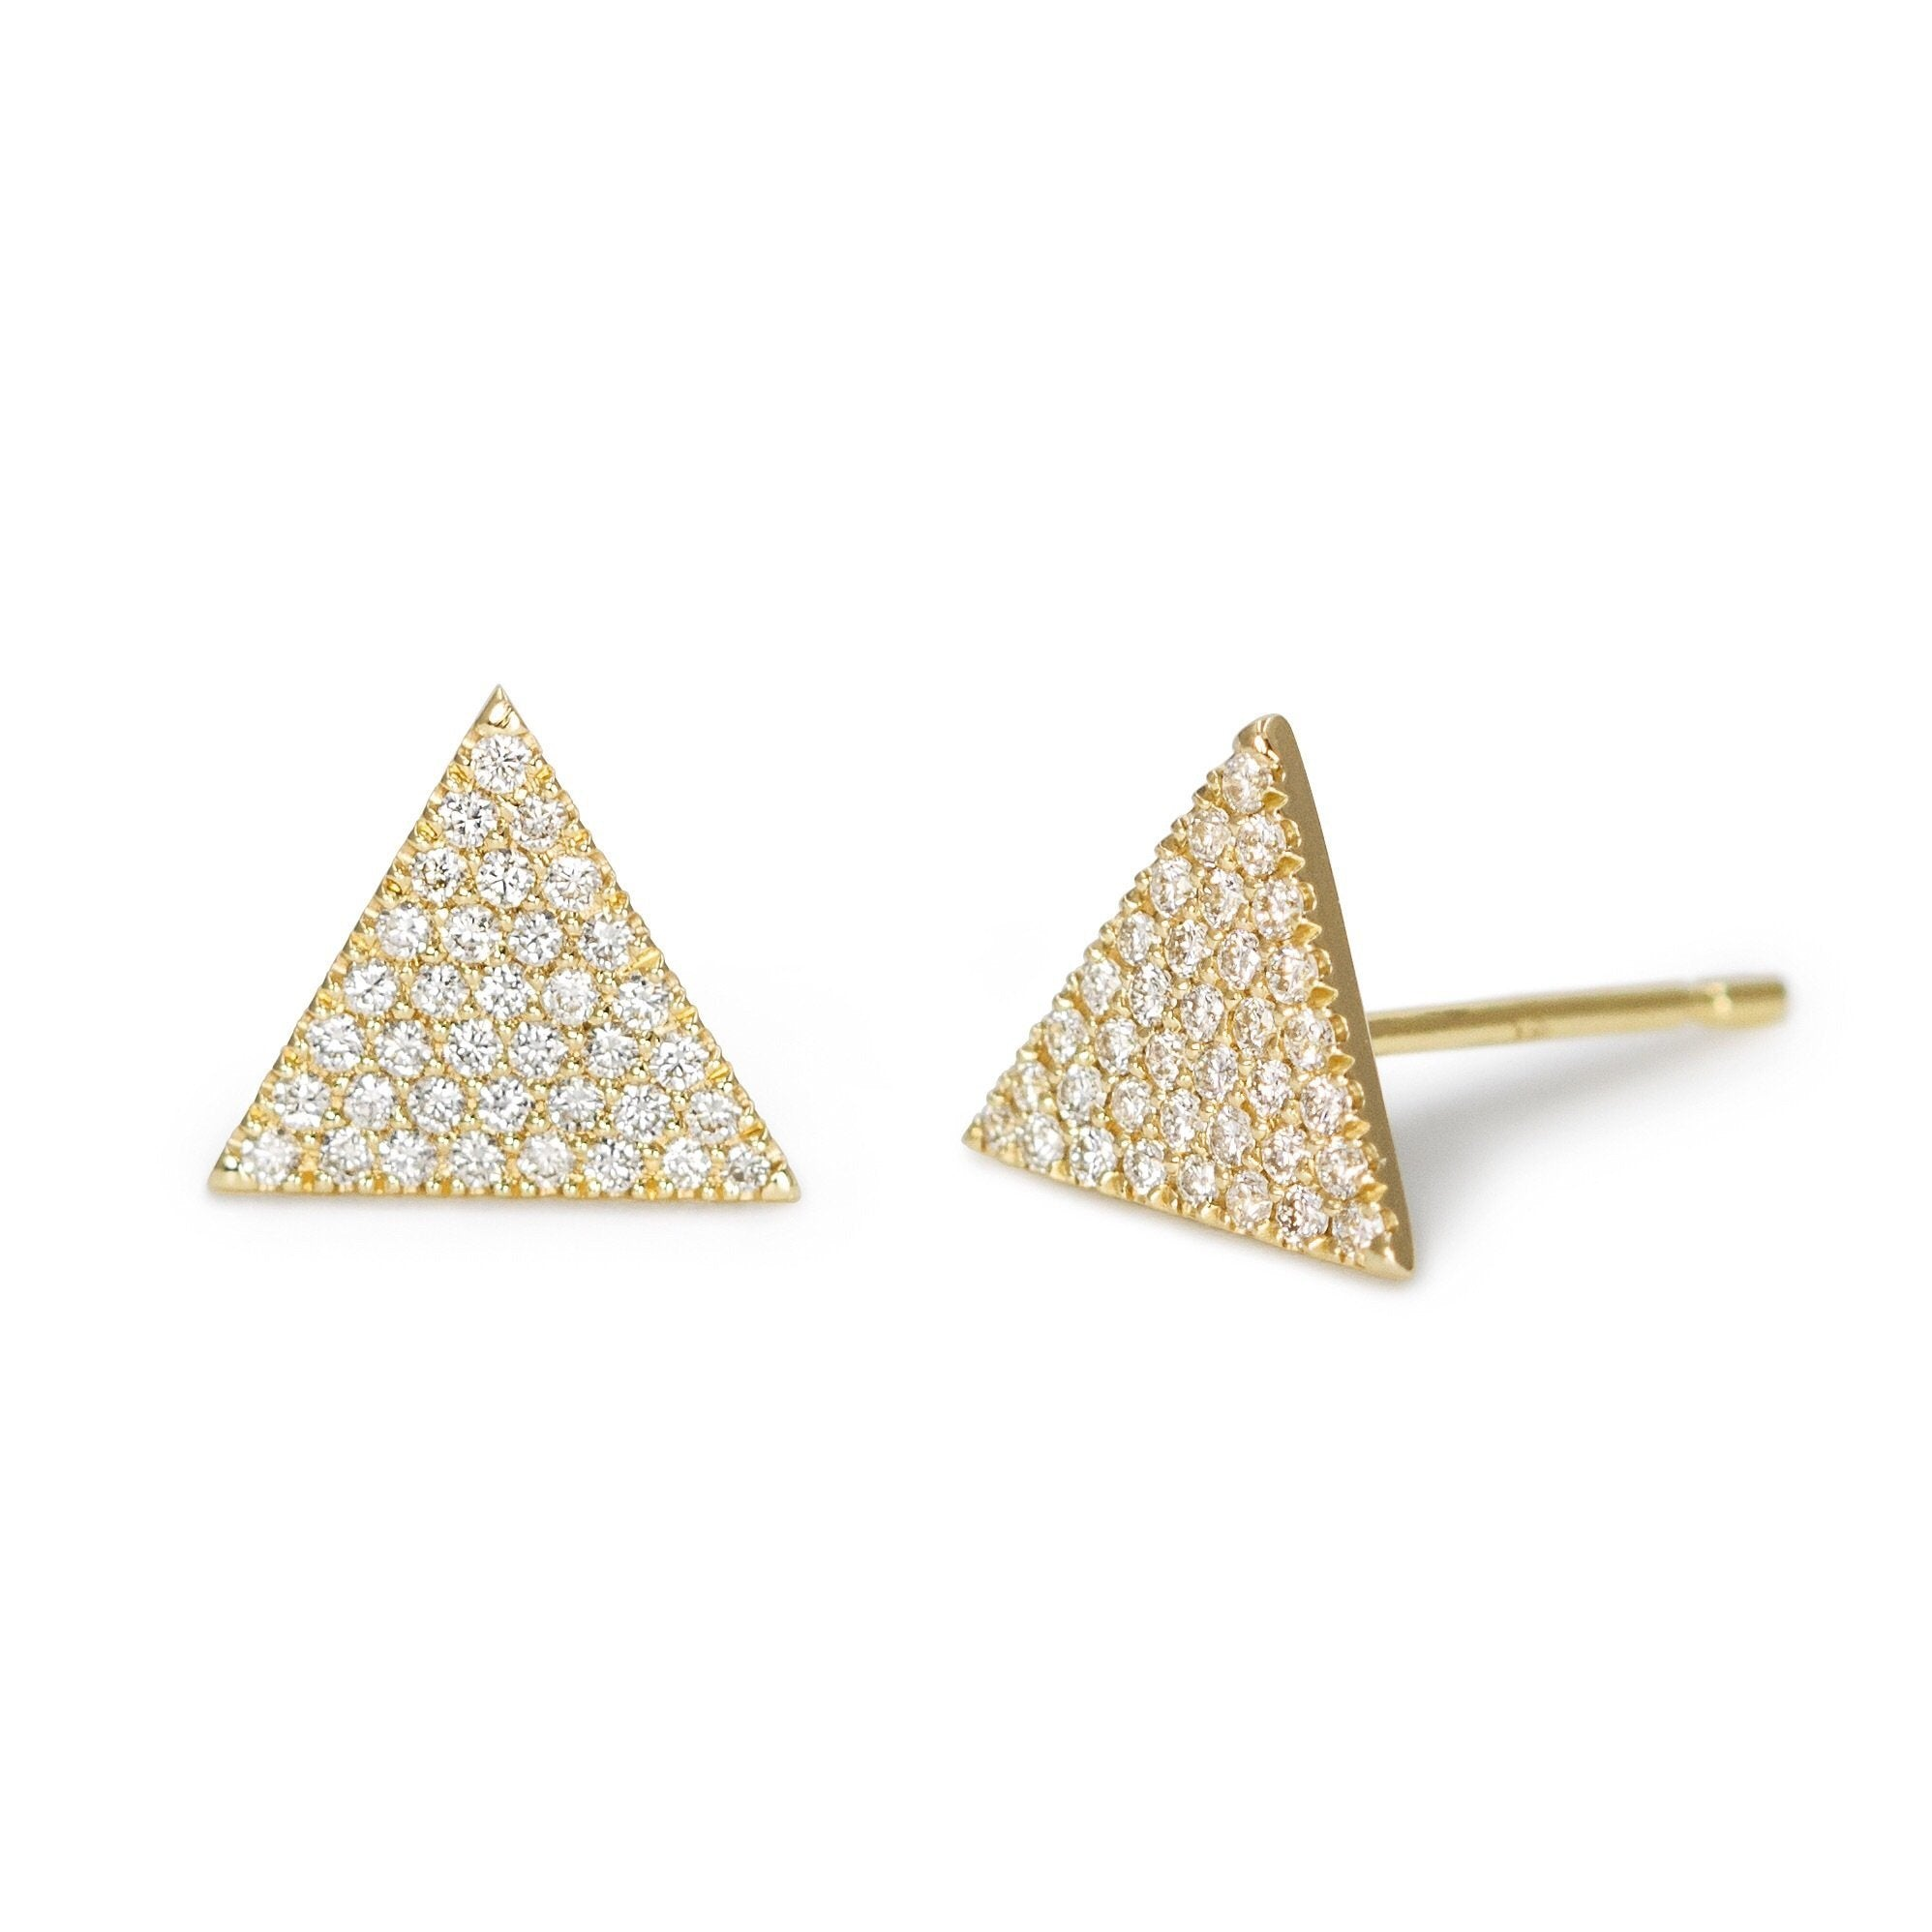 additional earrings white diamond product passion products hestia jewellery gold jewels stud